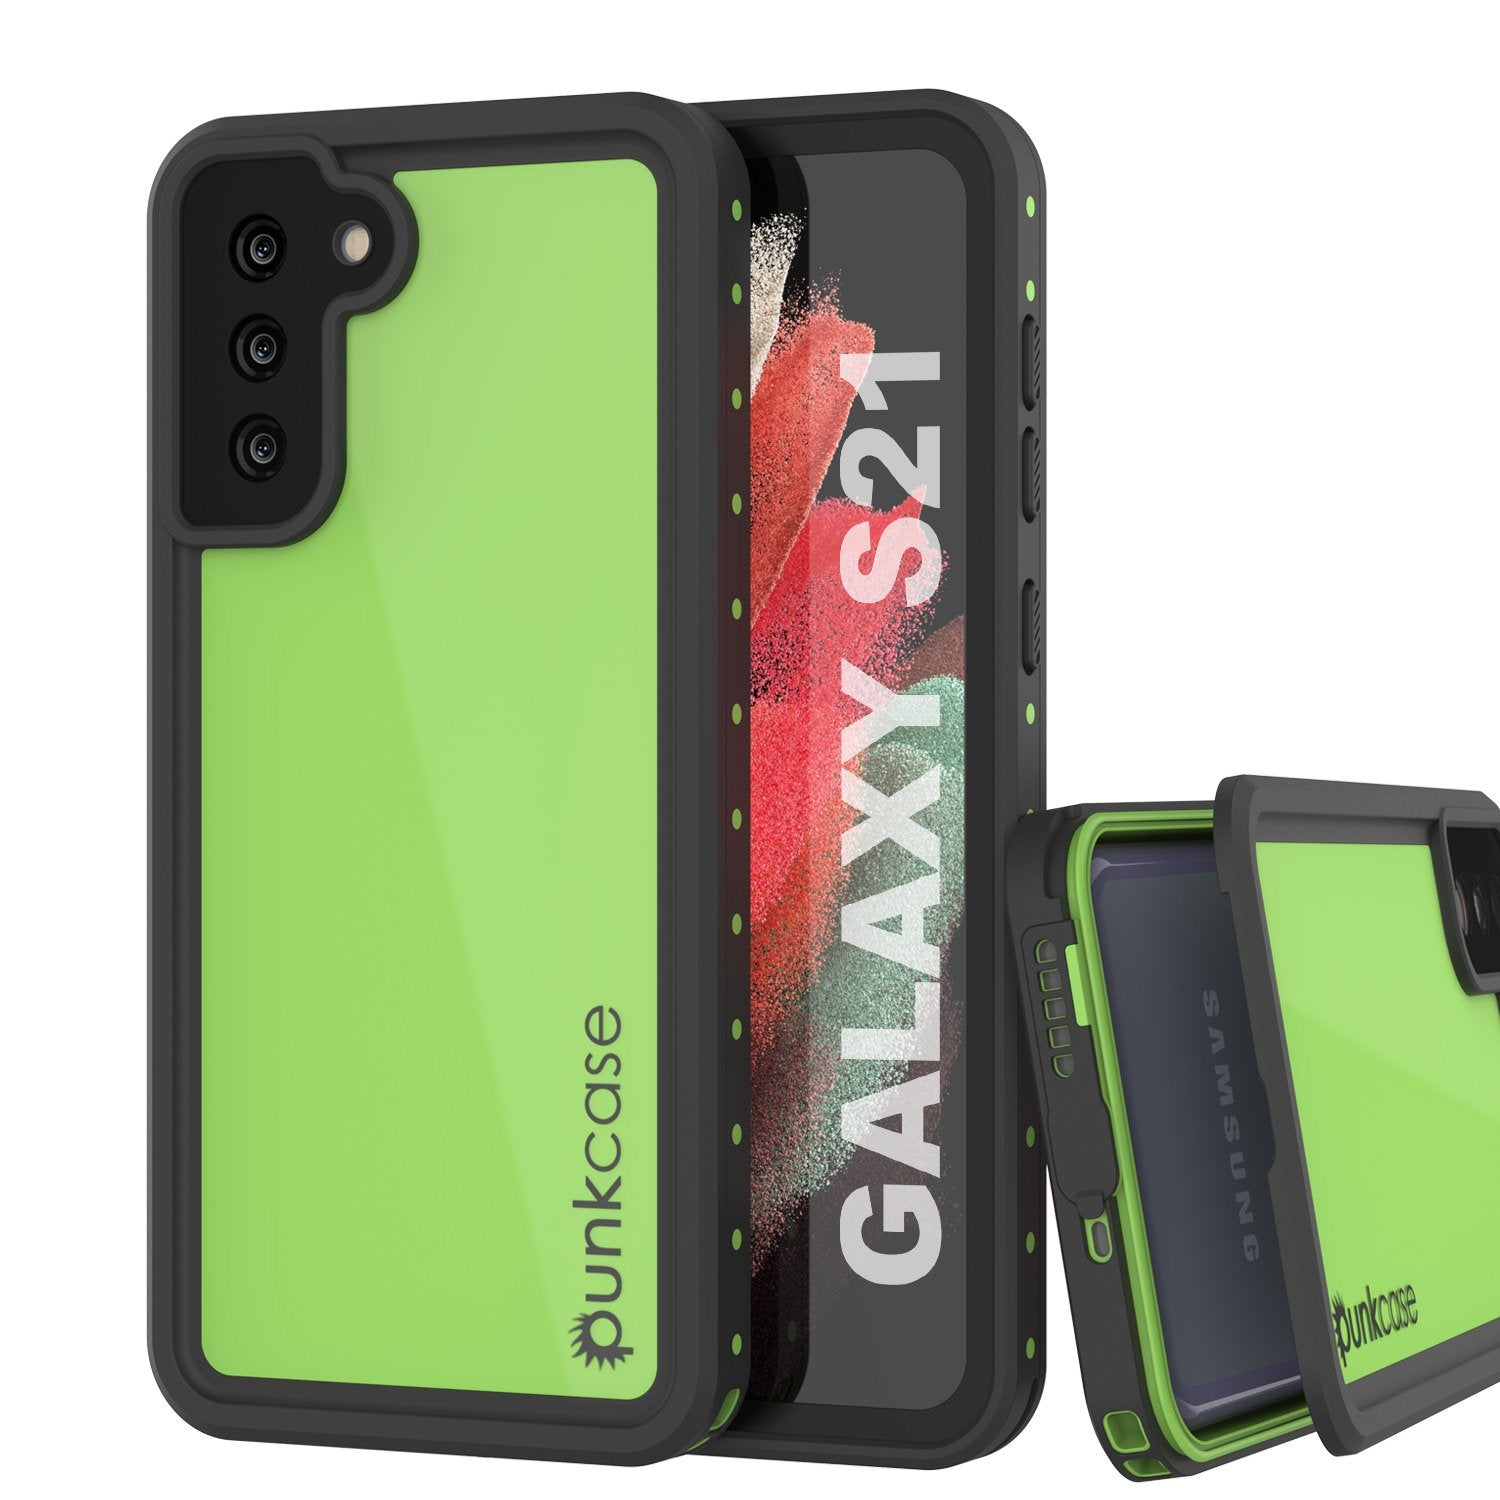 Galaxy S21 Waterproof Case PunkCase StudStar Light Green Thin 6.6ft Underwater IP68 ShockProof